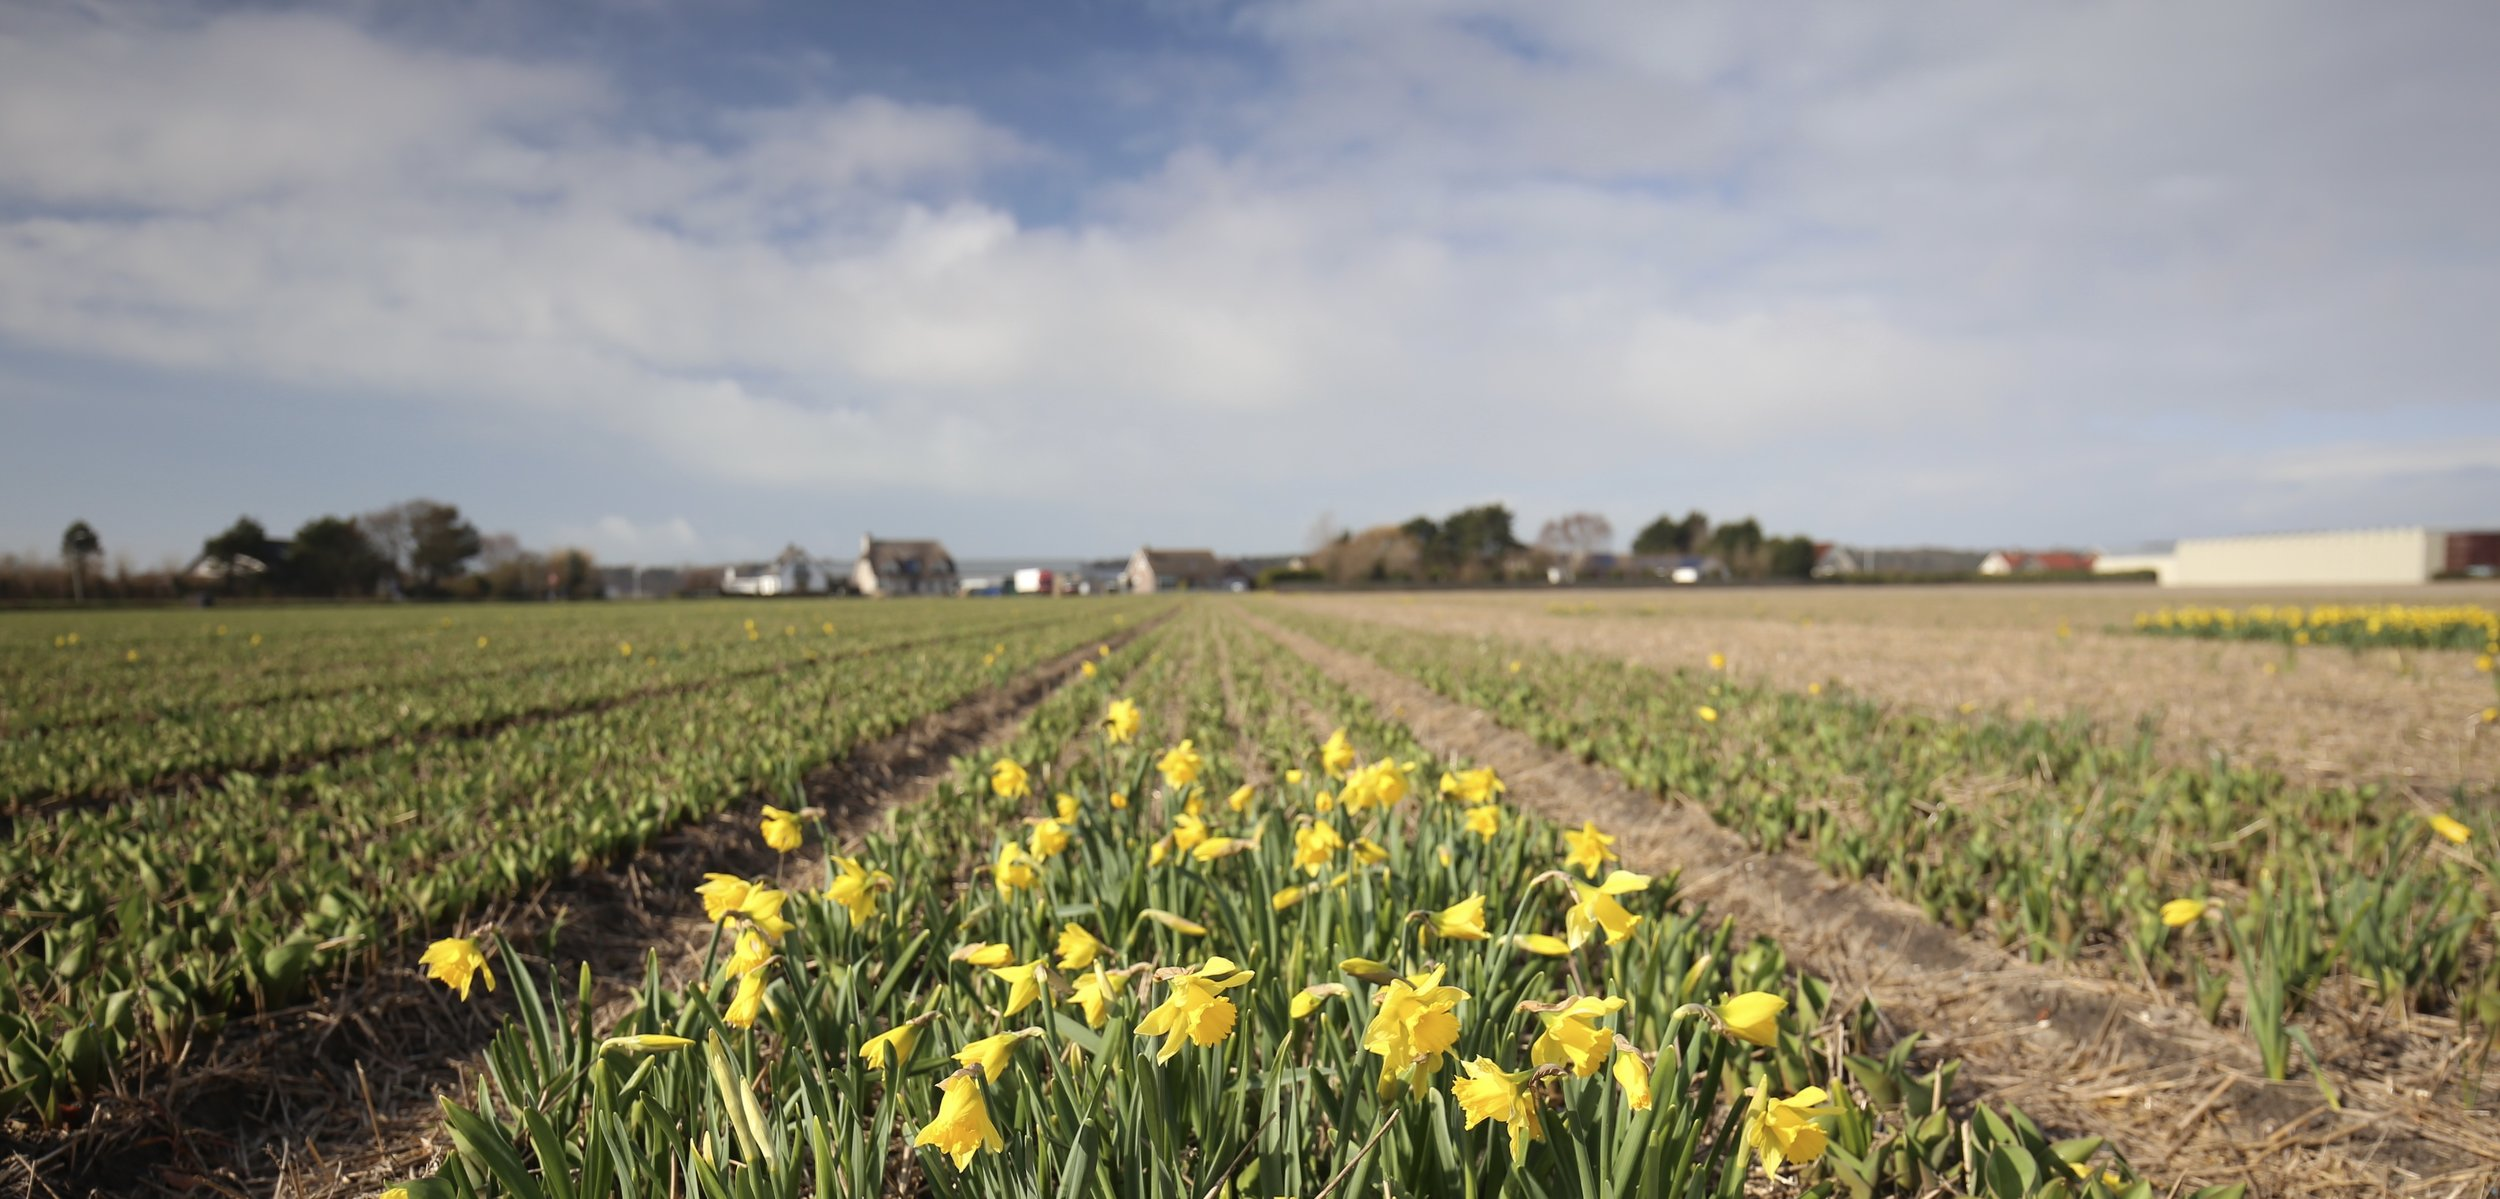 Fields of daffodils before the tulips come out, outside the city of Amsterdam.